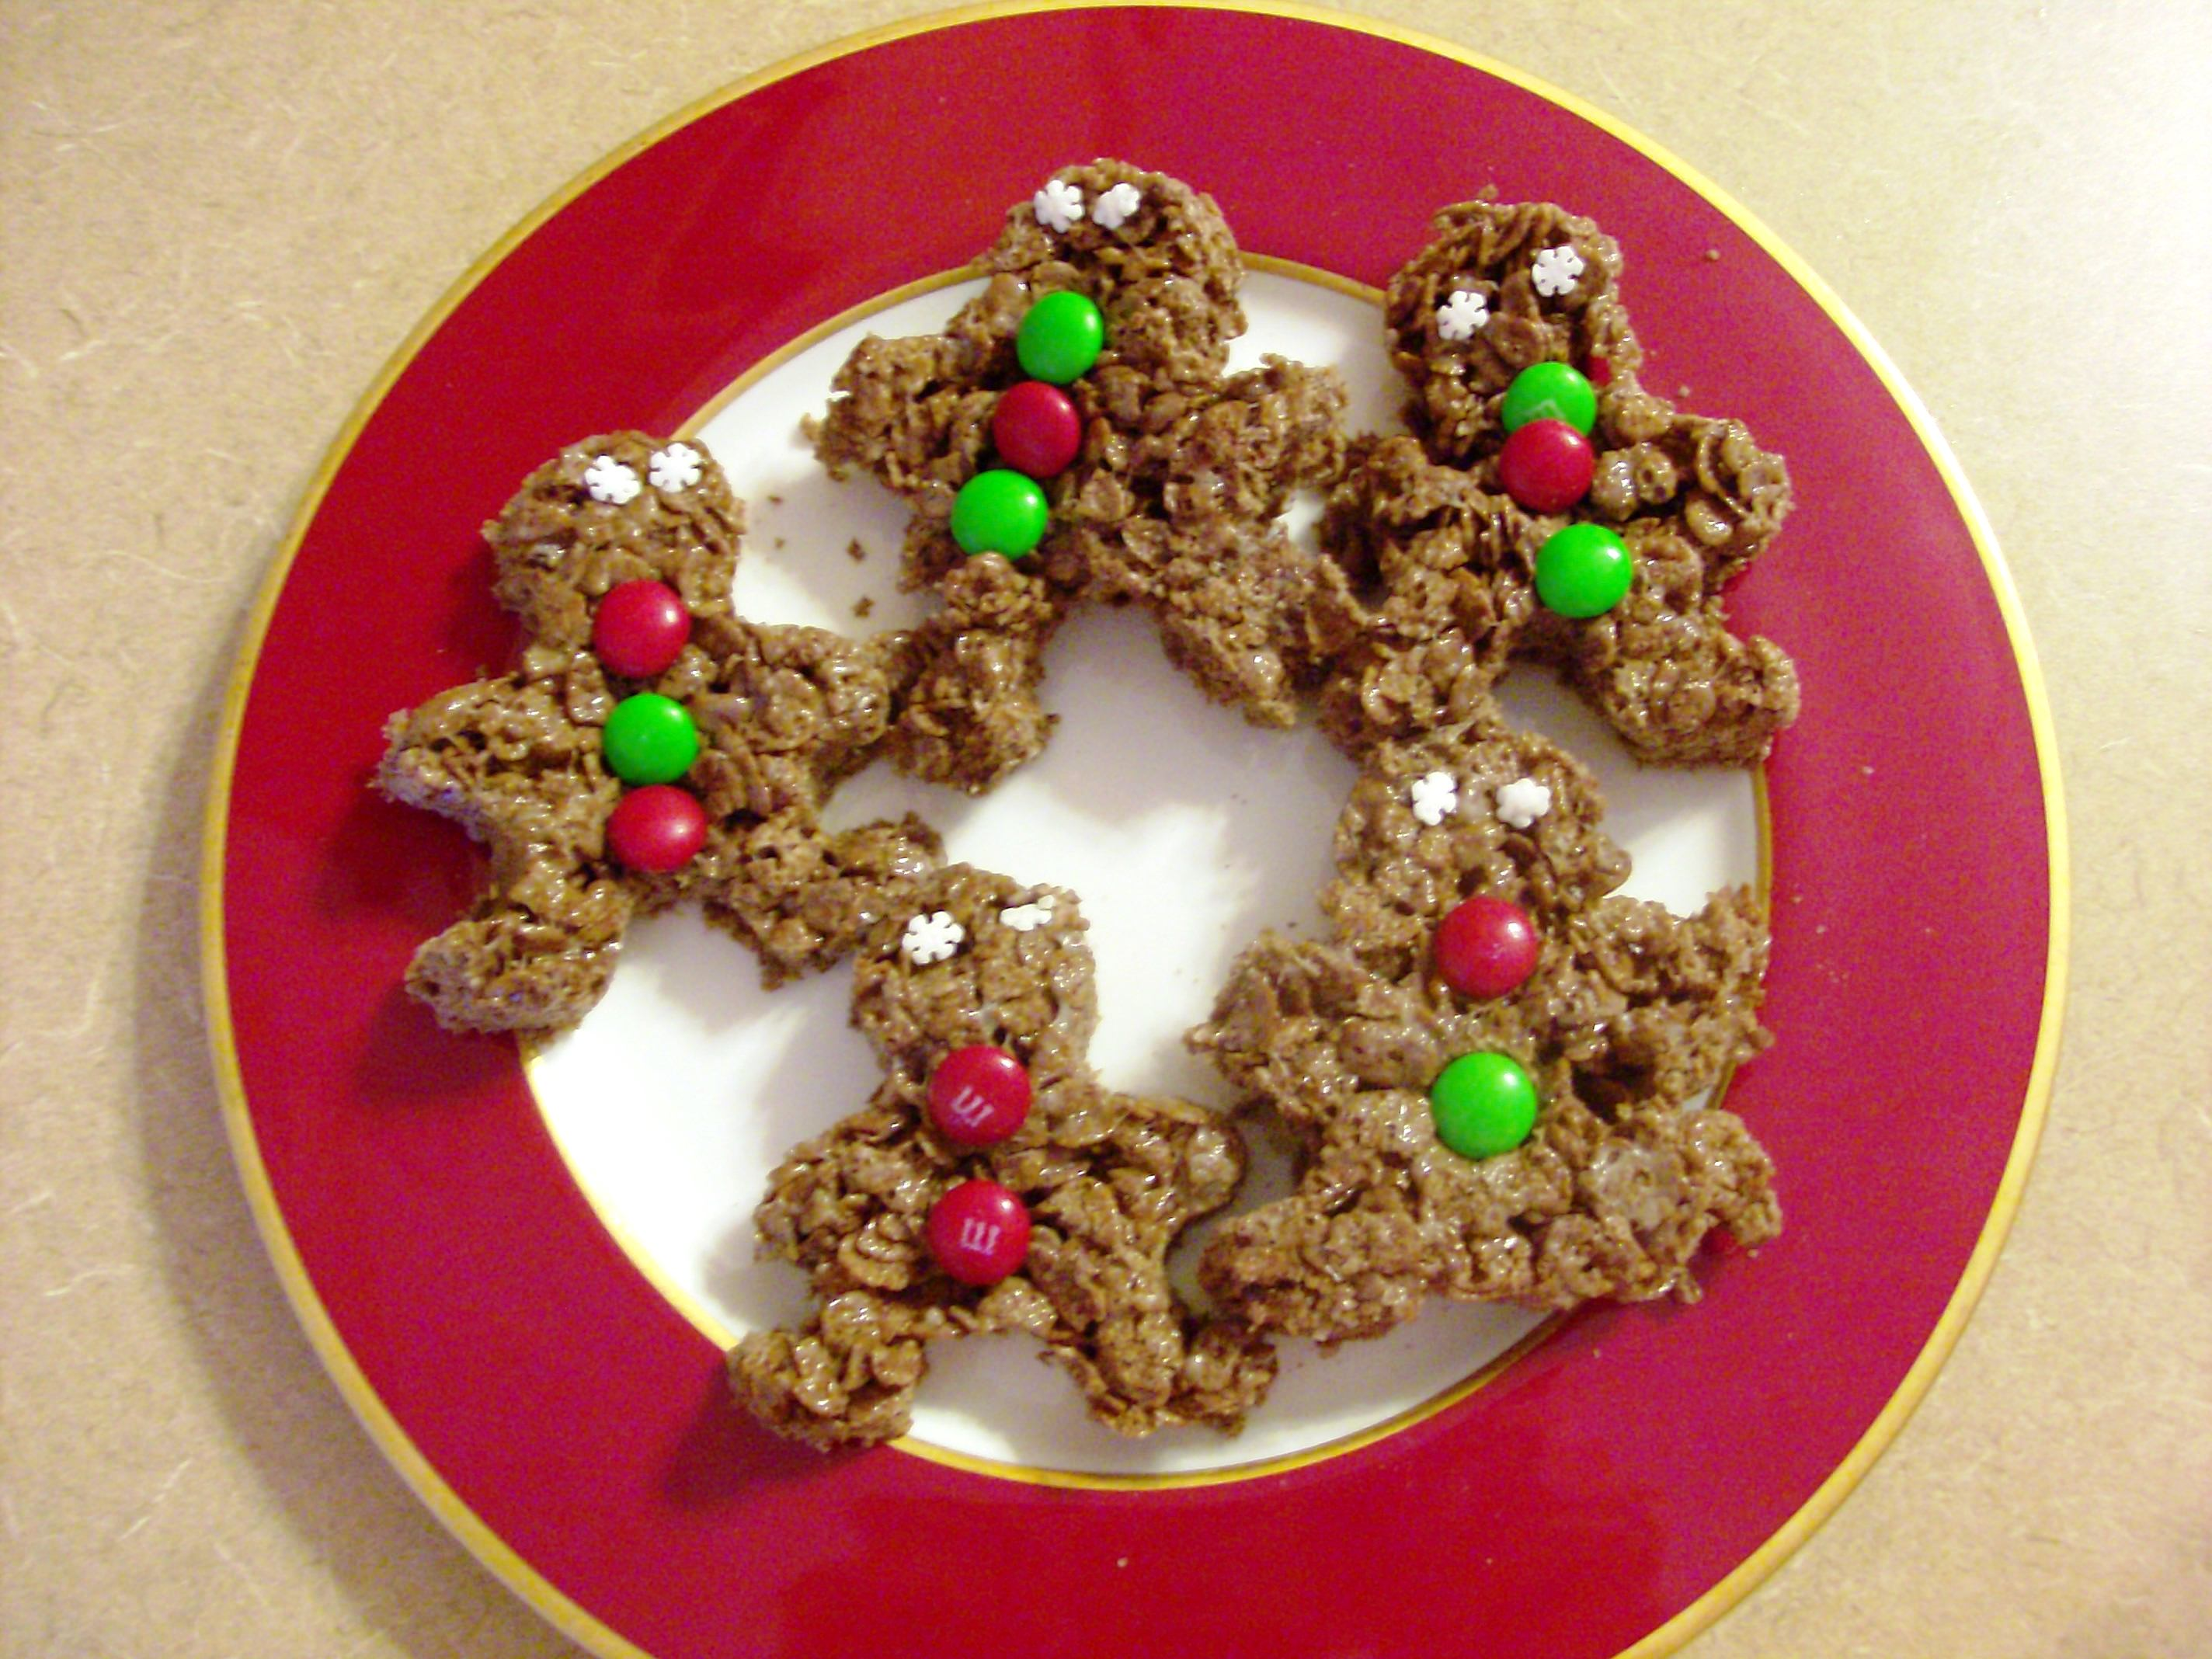 Christmas Treat: Chocolate Mint Pebbles Treats